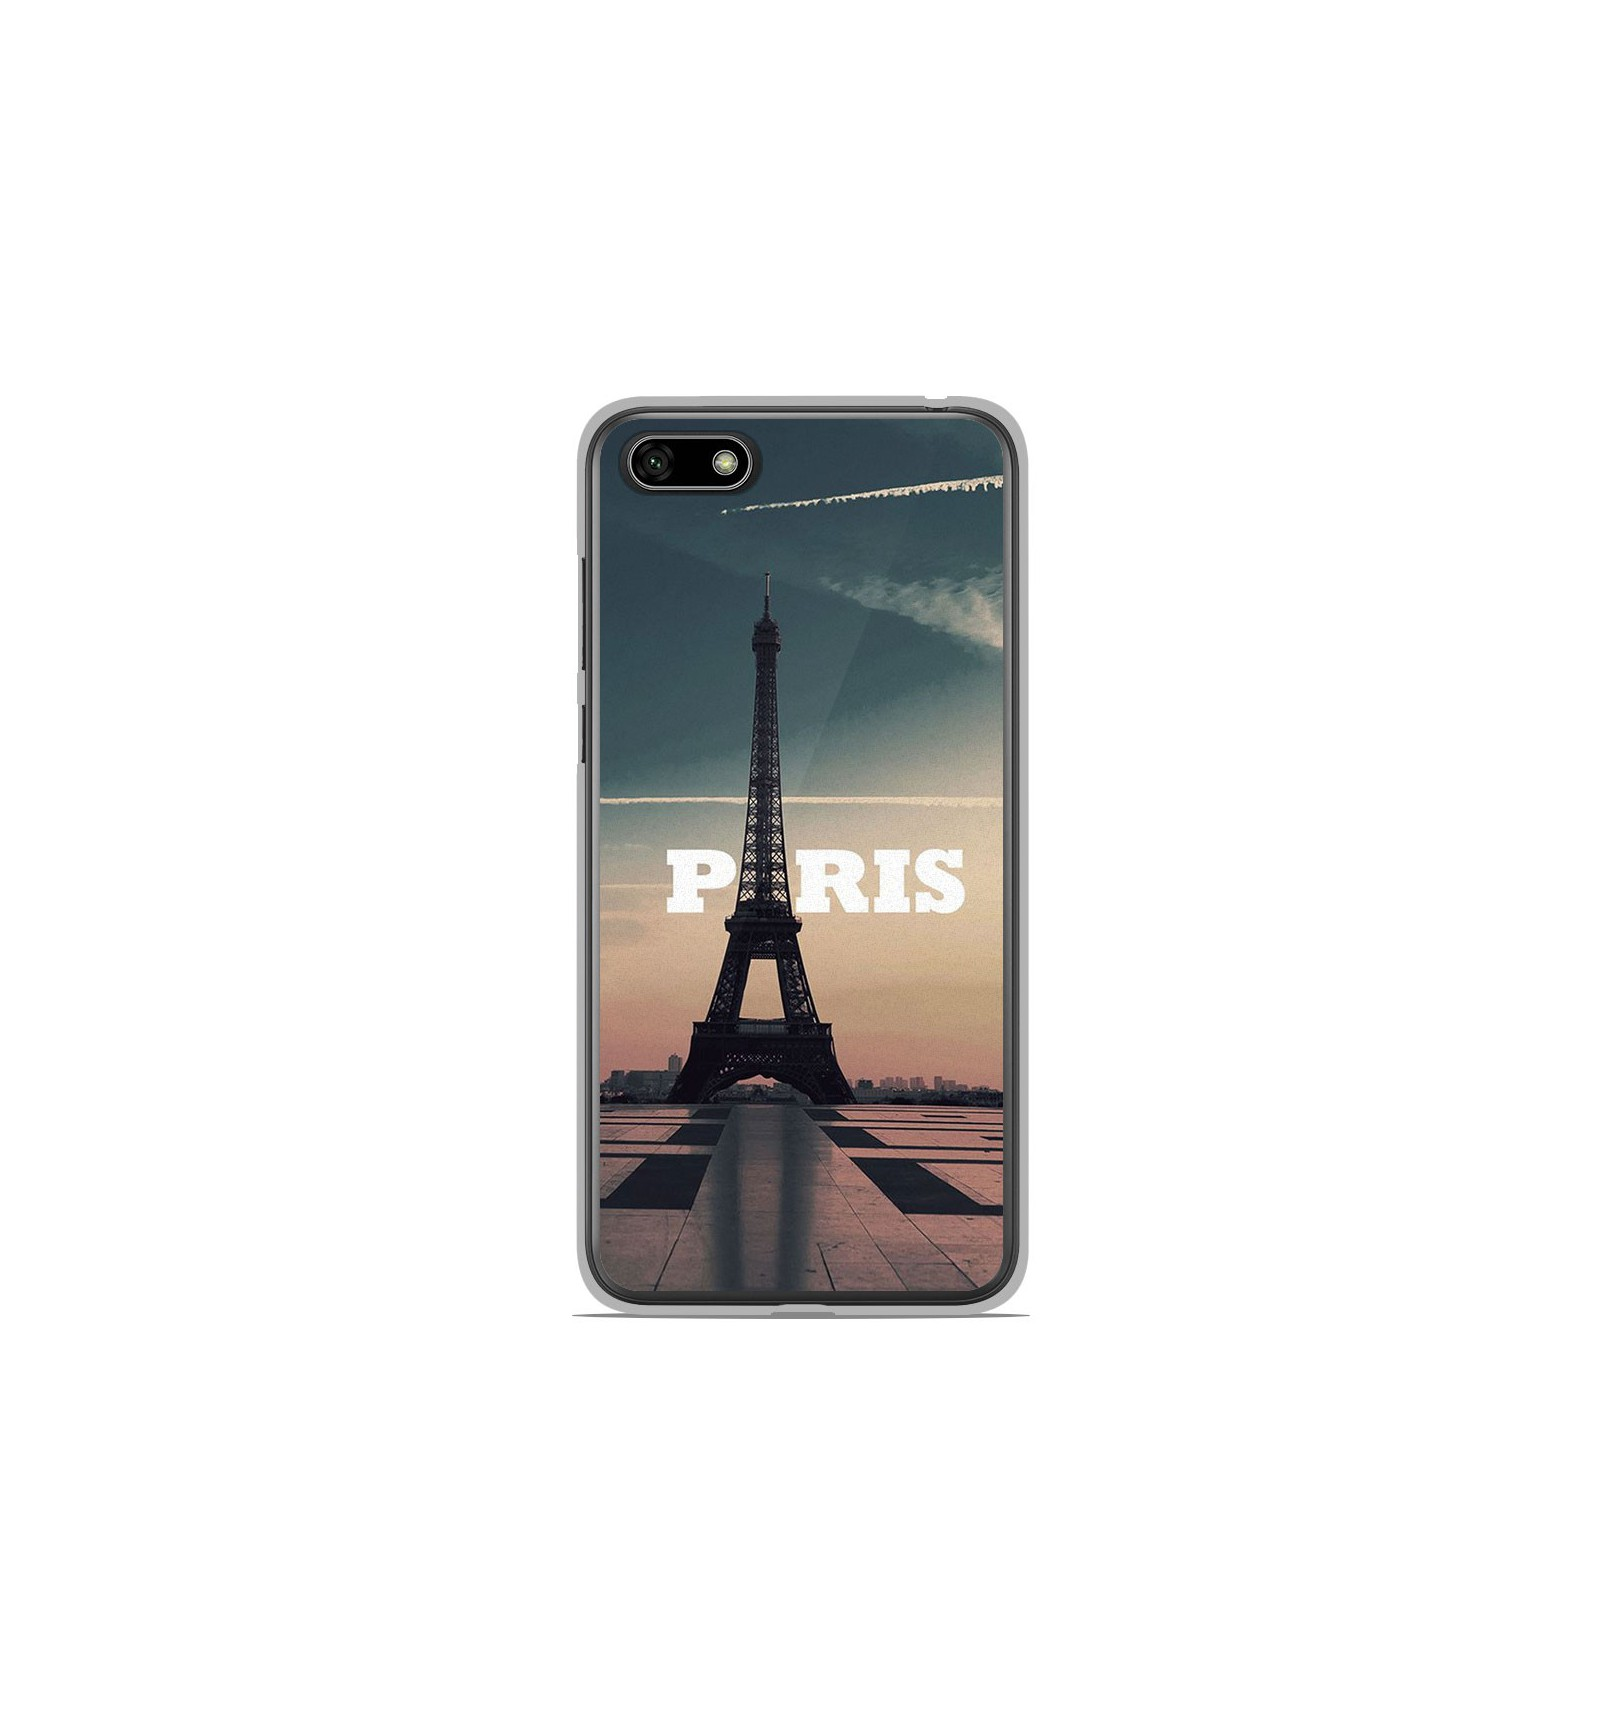 coque personnalisable huawei y5 2018